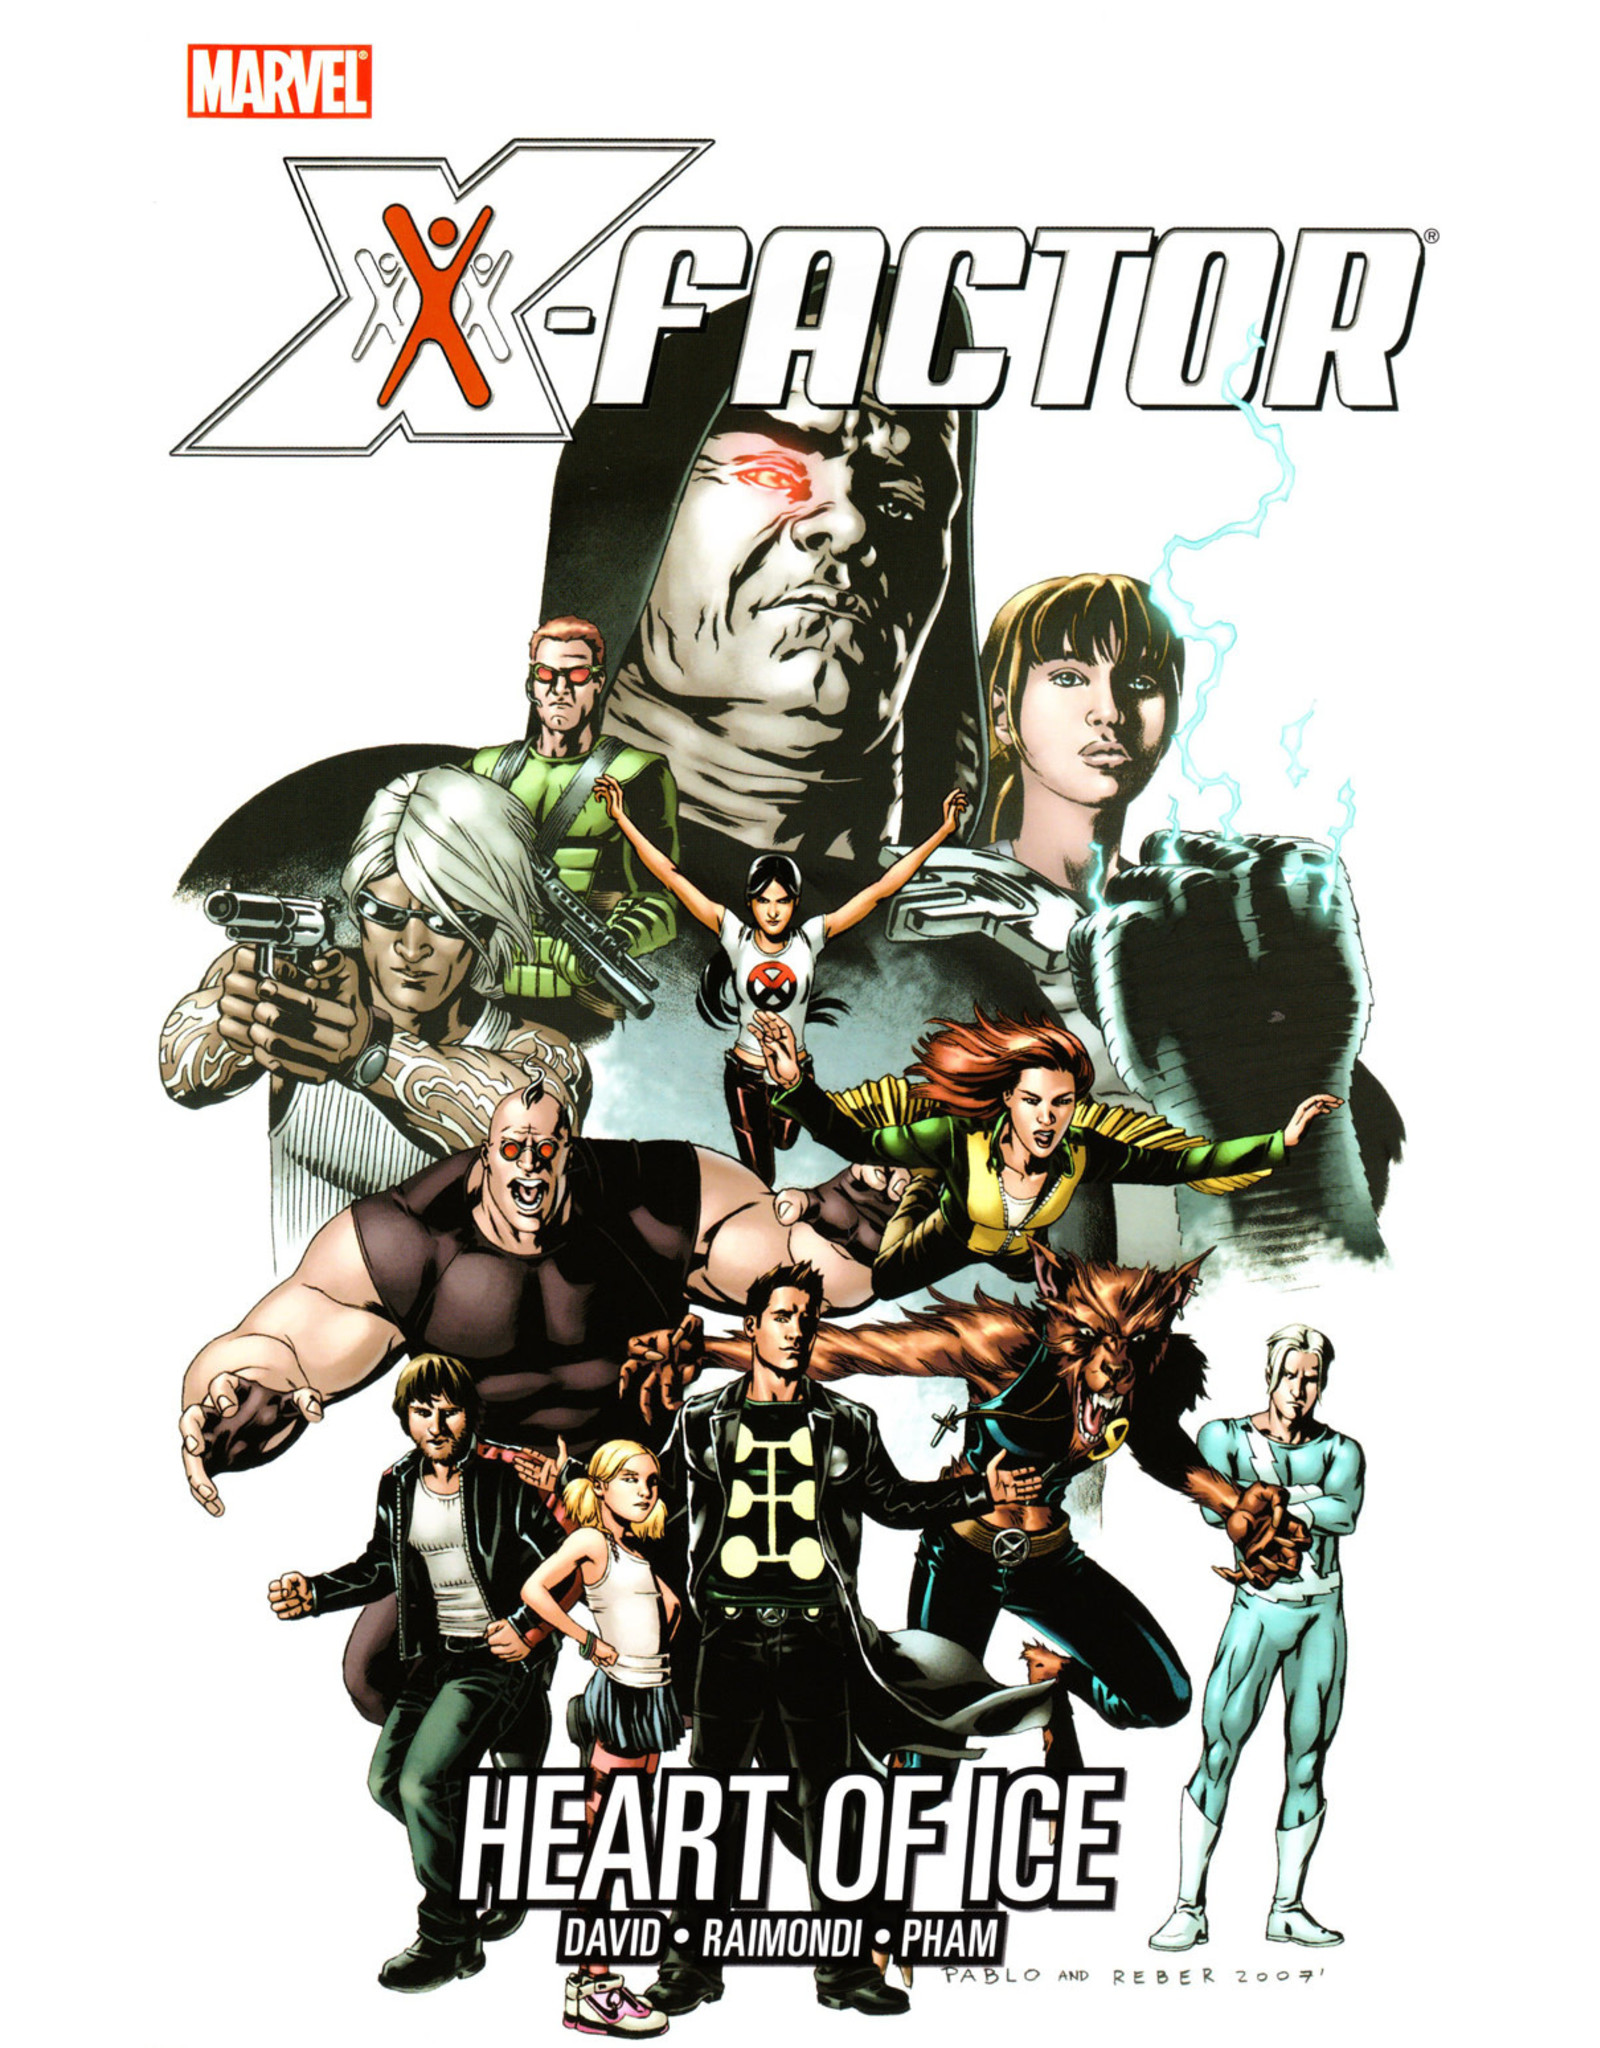 MARVEL COMICS X-FACTOR TP VOL 04 HEART OF ICE